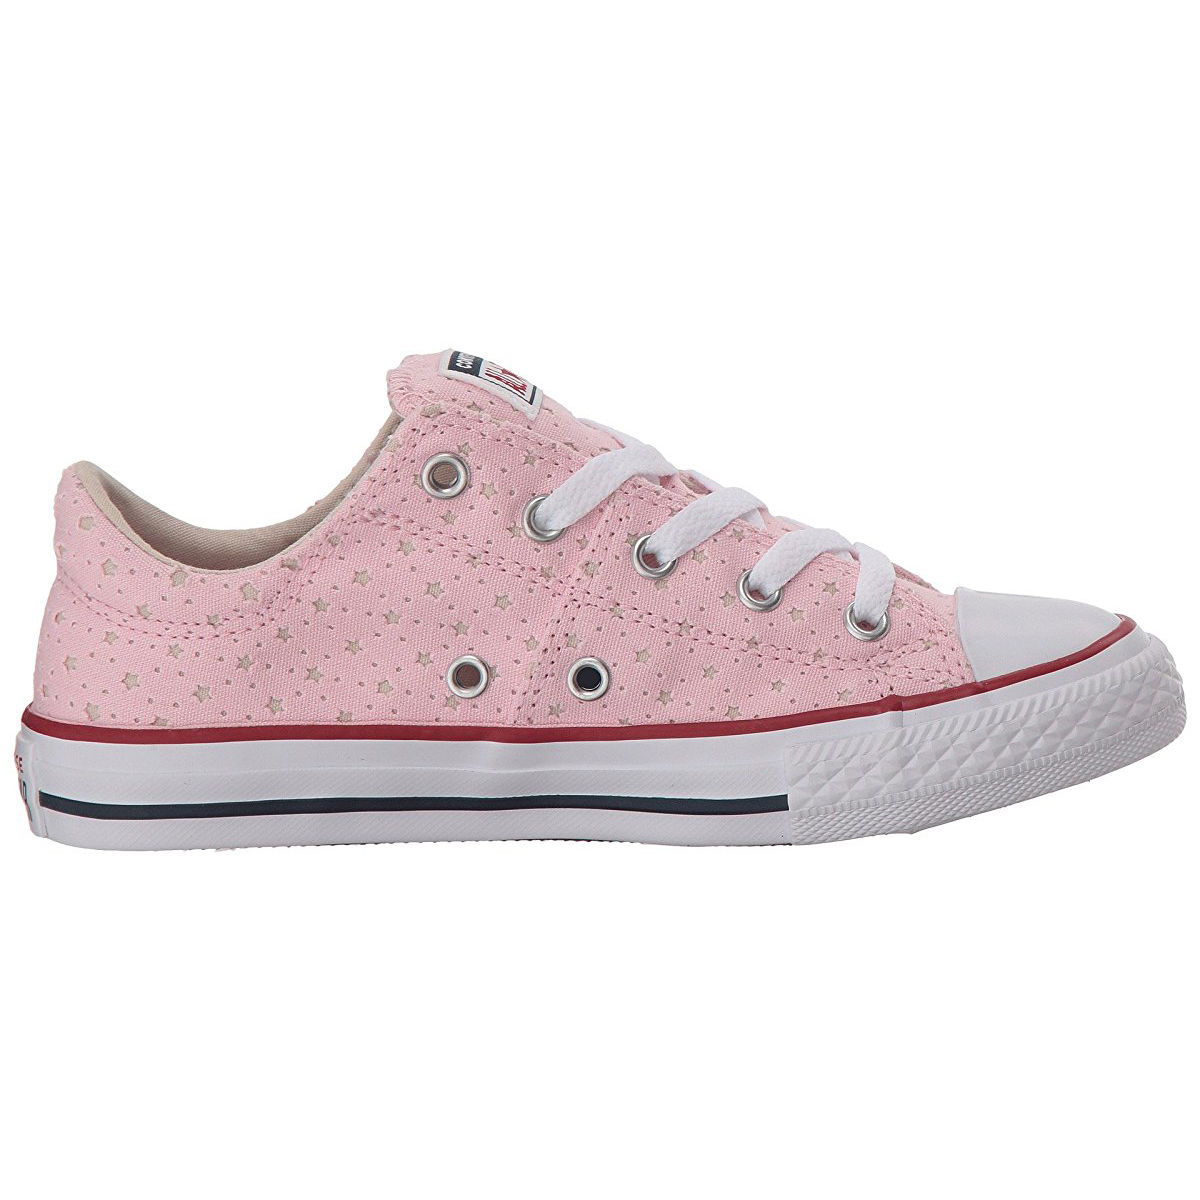 Converse Chuck Taylor All Star Madison Ox Pre School Kids Casual Shoe